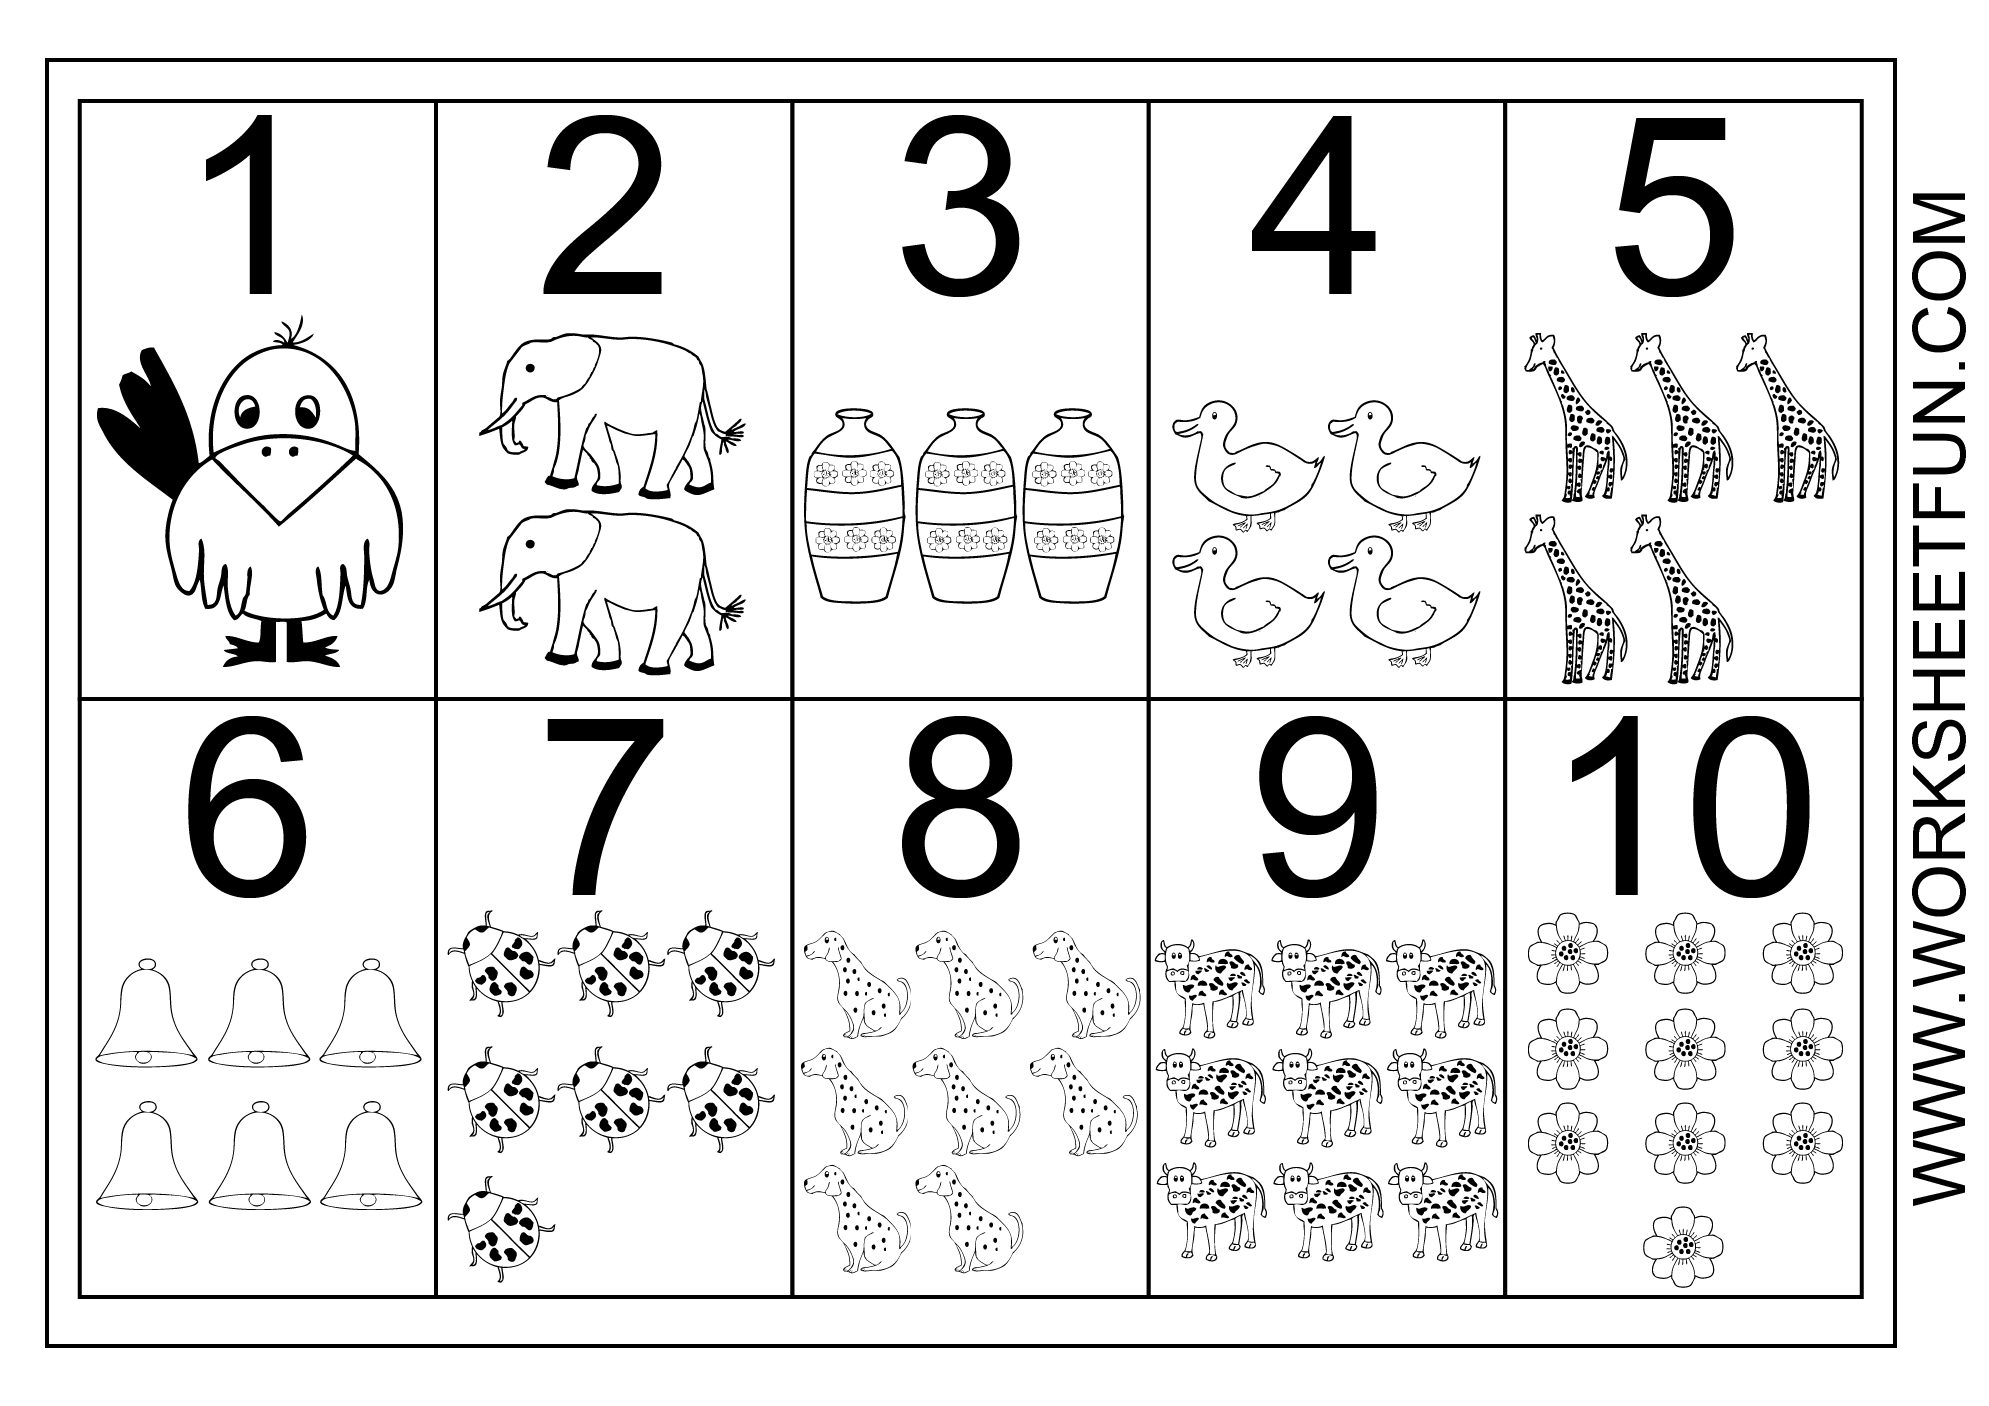 Picture Number Chart 1-10 | Numbers Preschool, Free